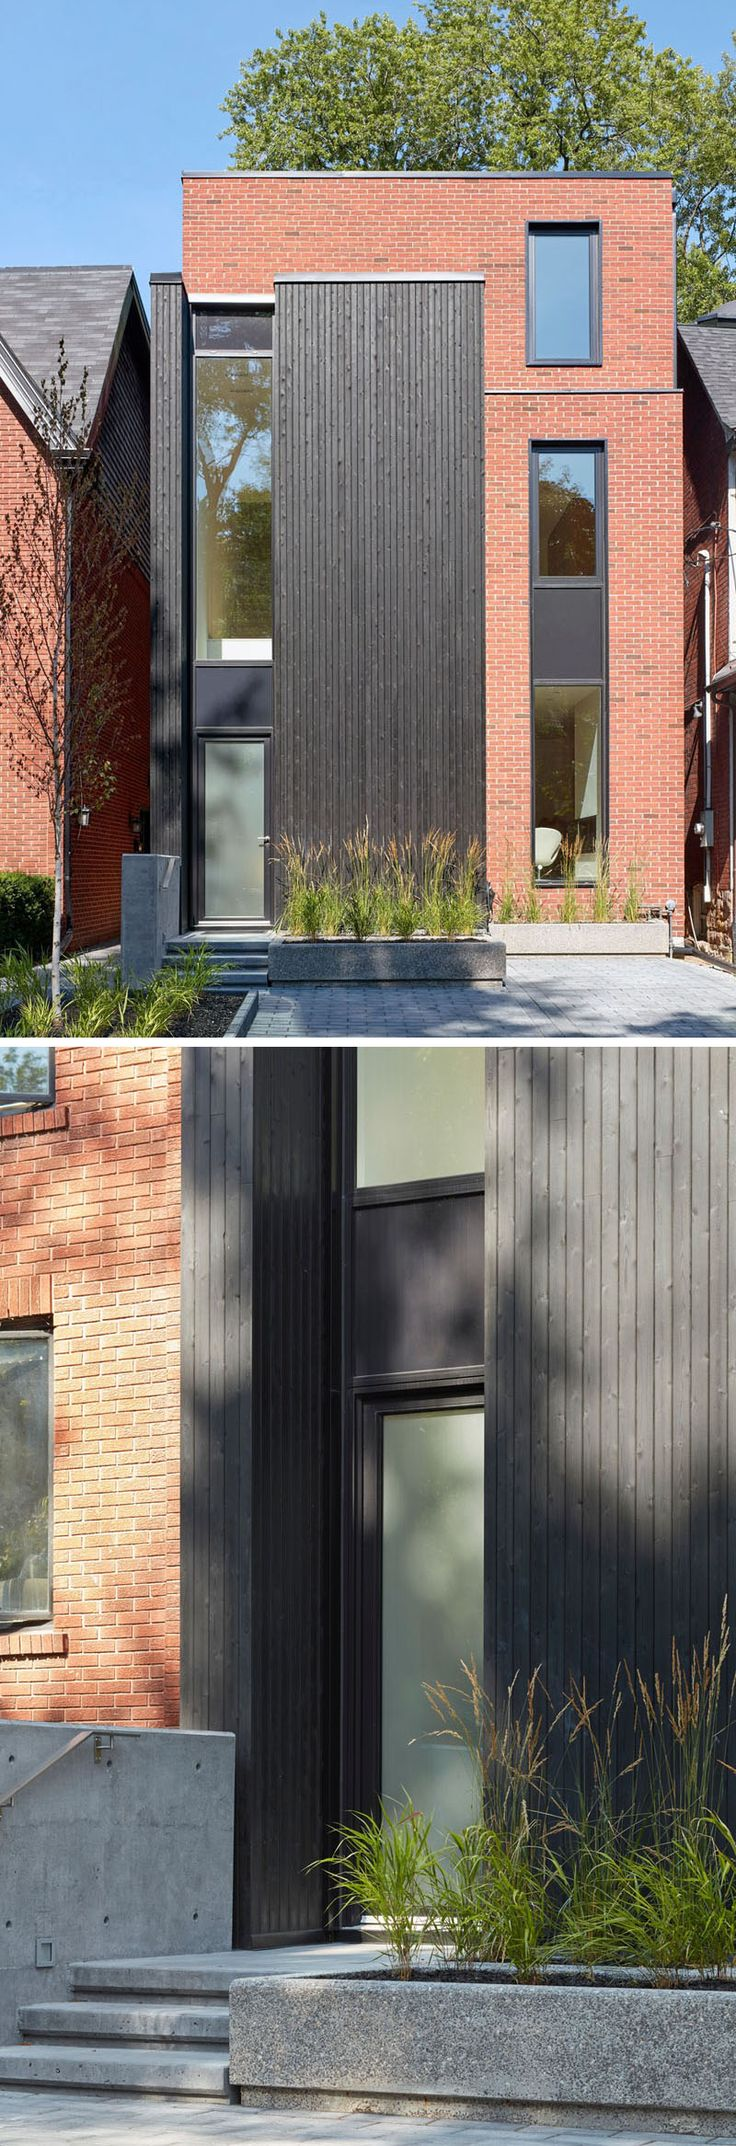 This modern house in Toronto featurestall slender windows with a red brick and black-stained cedar facade. #ModernHouse #BlackCedar #RedBrick #Facade